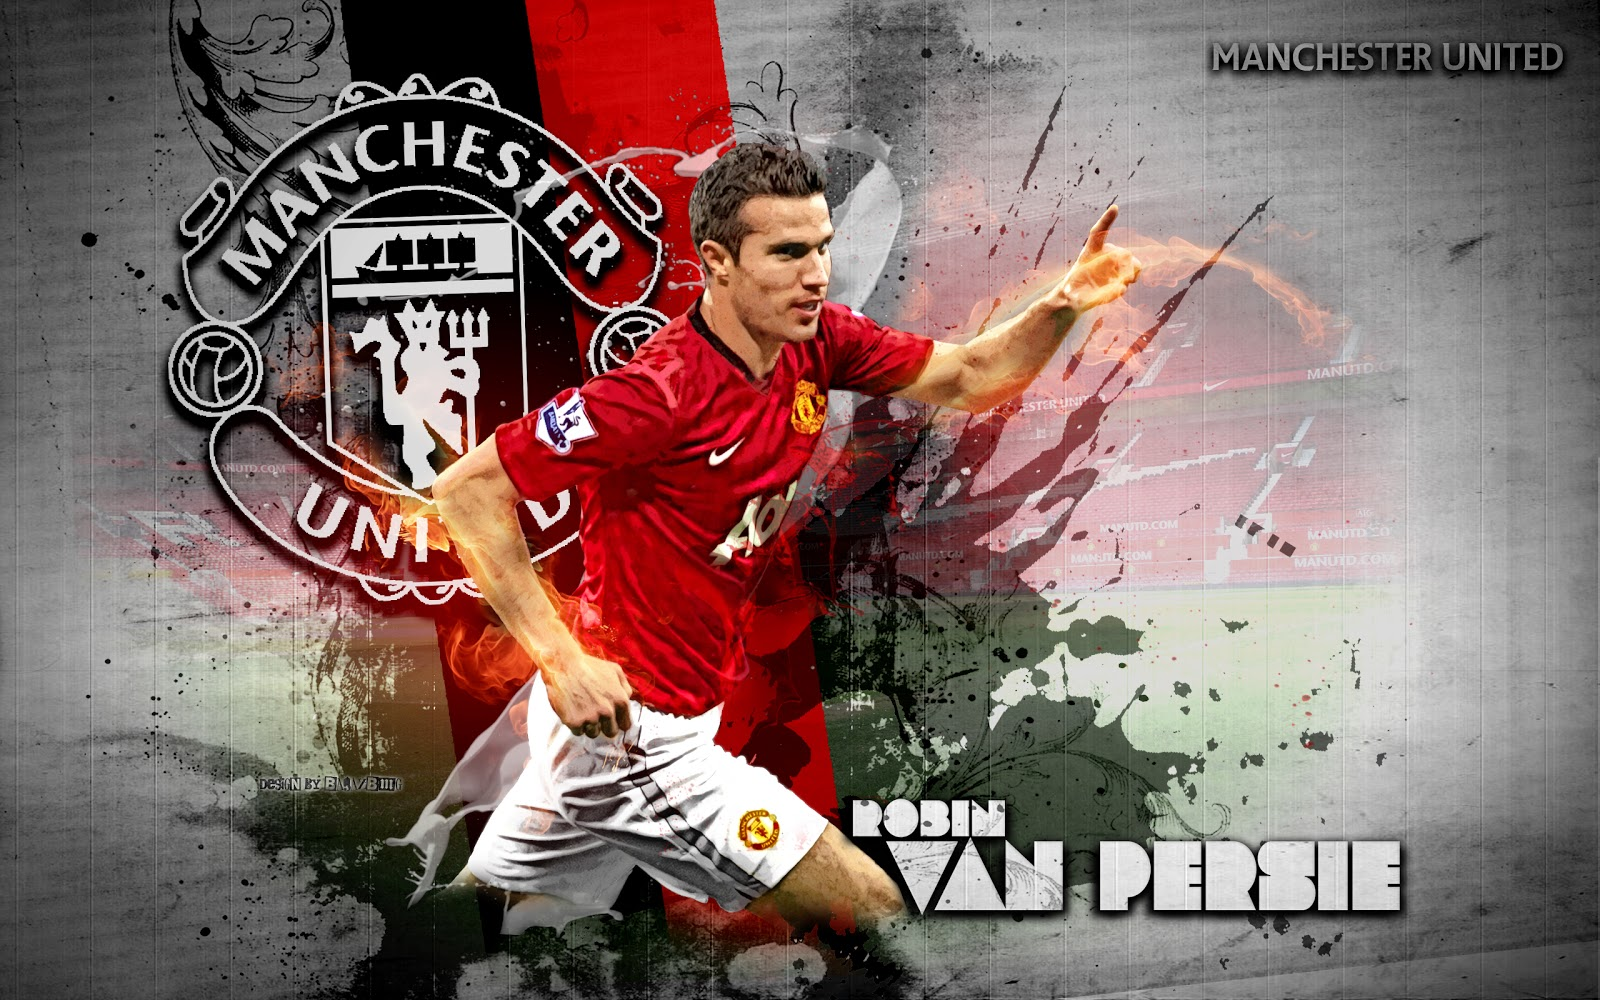 Wallpapers hd for mac robin van persie manchester united wallpapers robin van persie manchester united wallpapers voltagebd Image collections